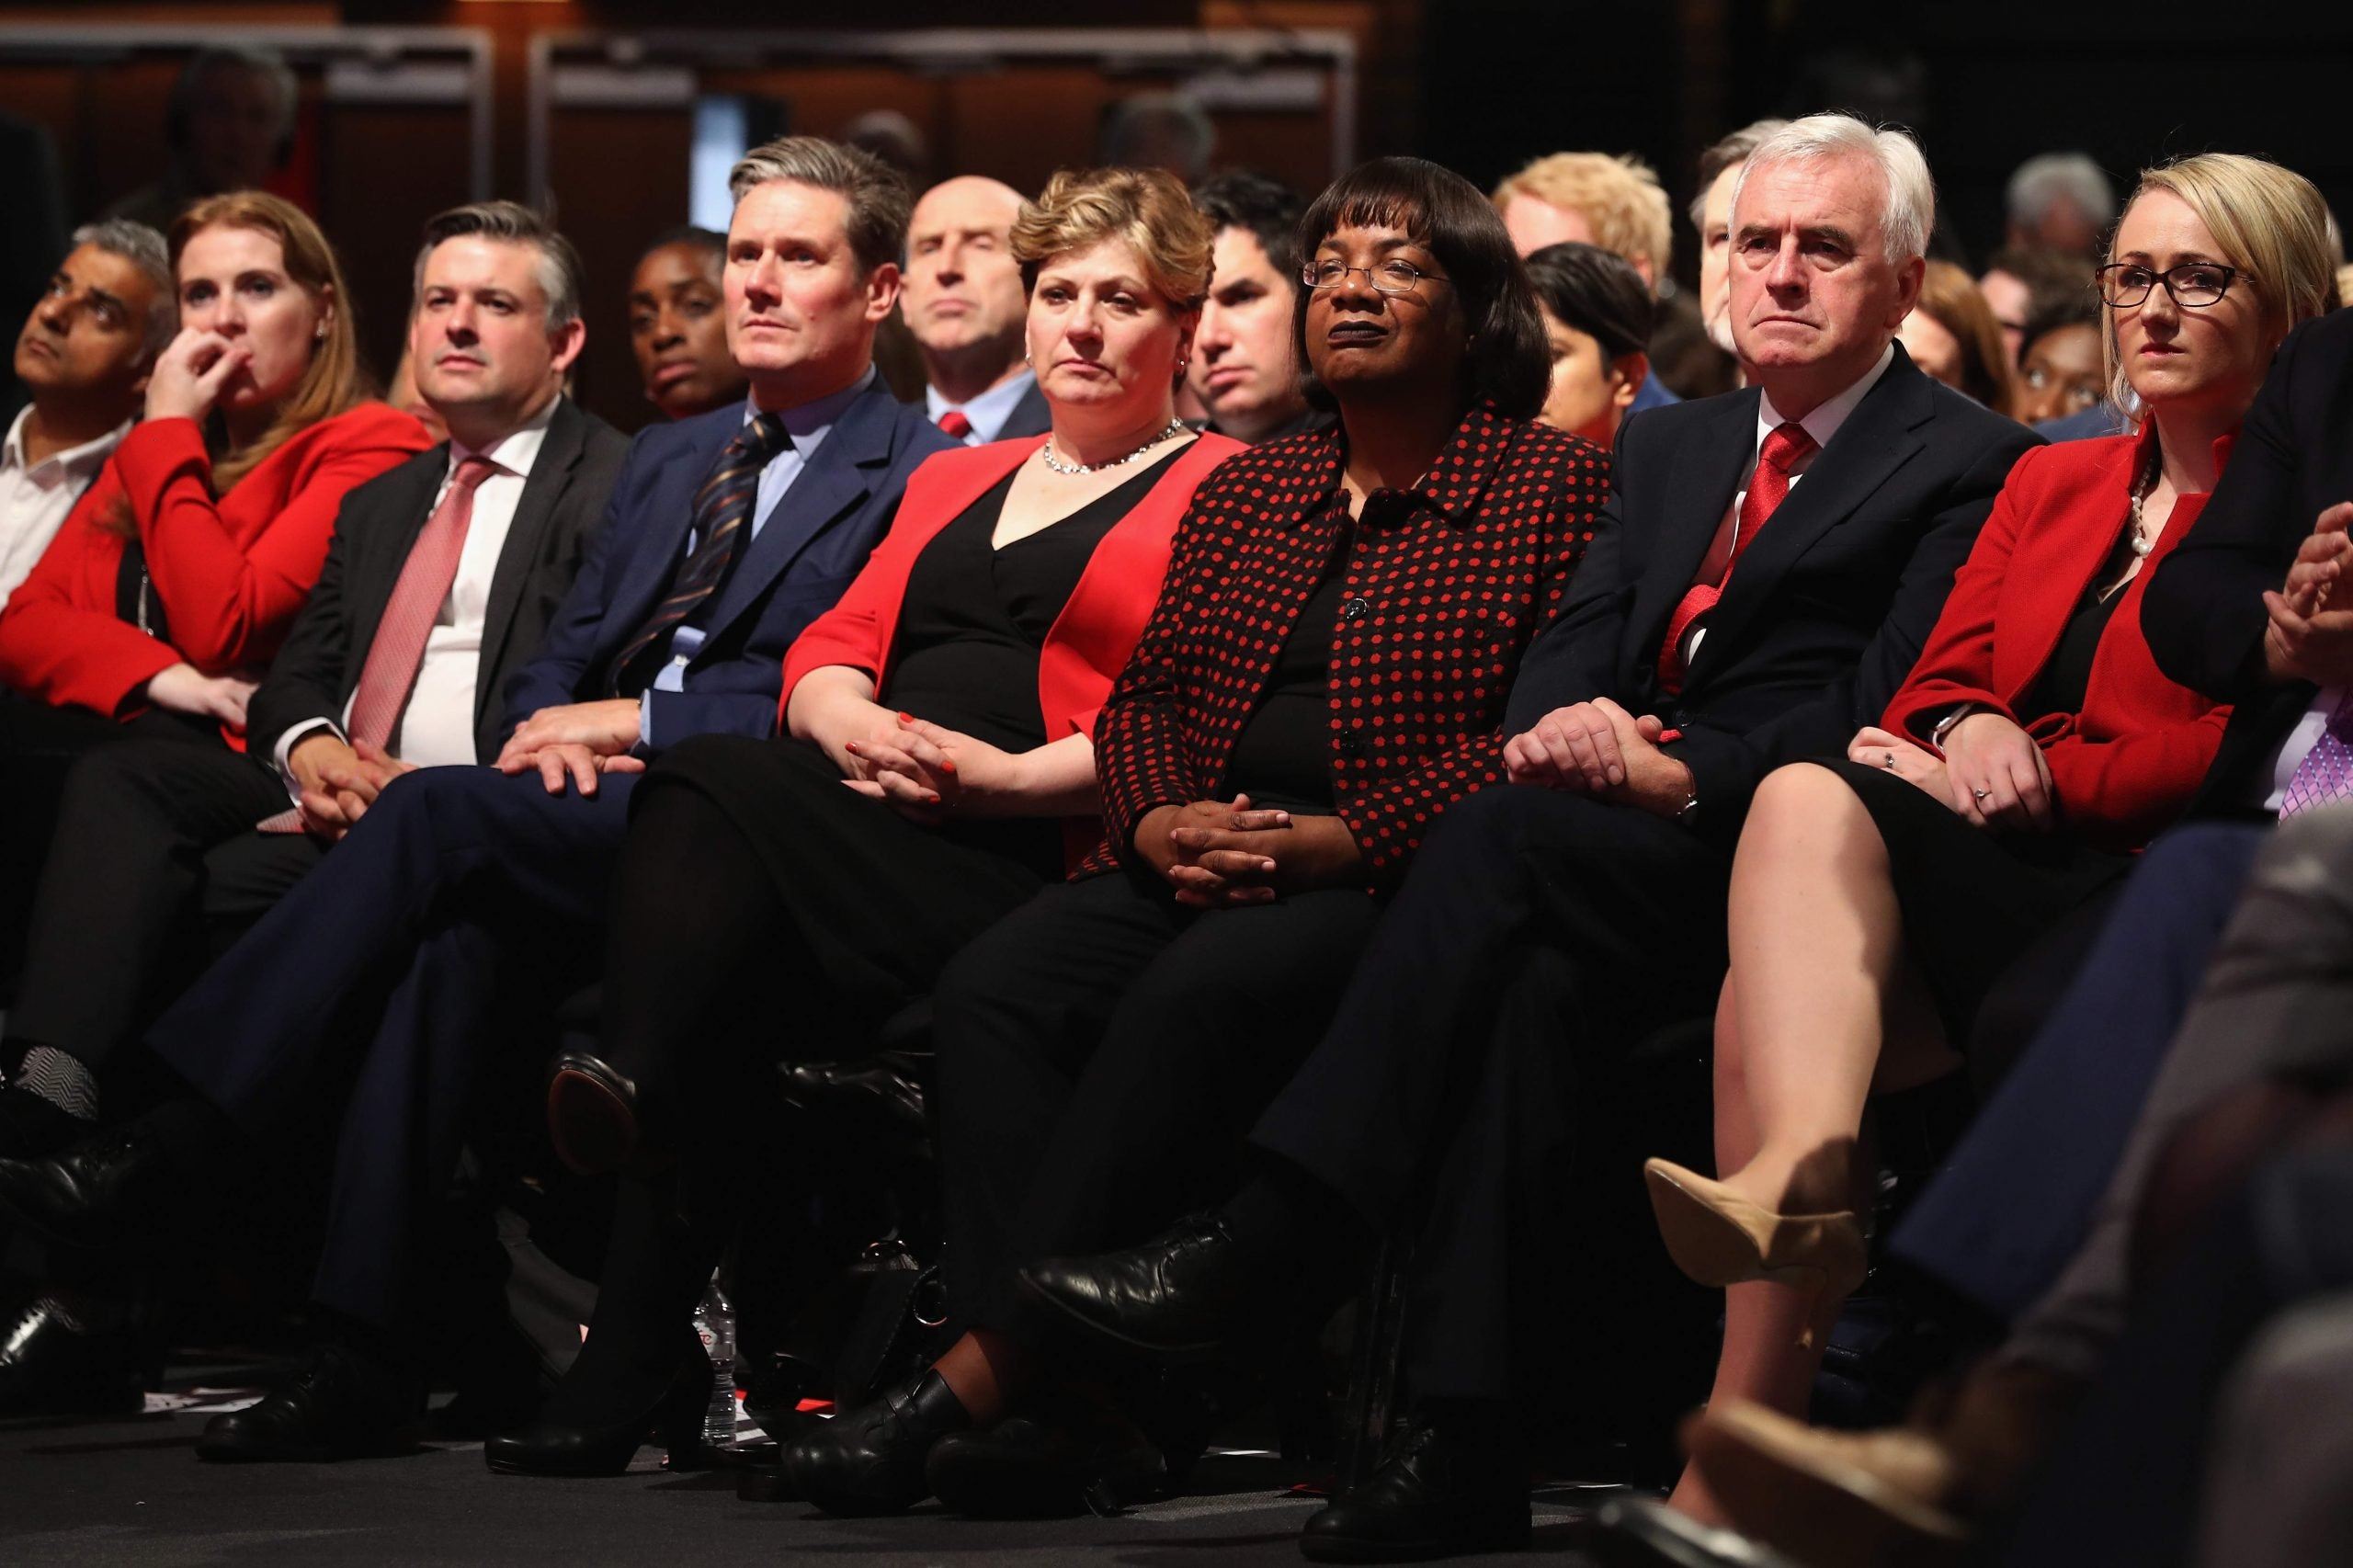 Labour's best option is a fresh referendum on the Brexit deal